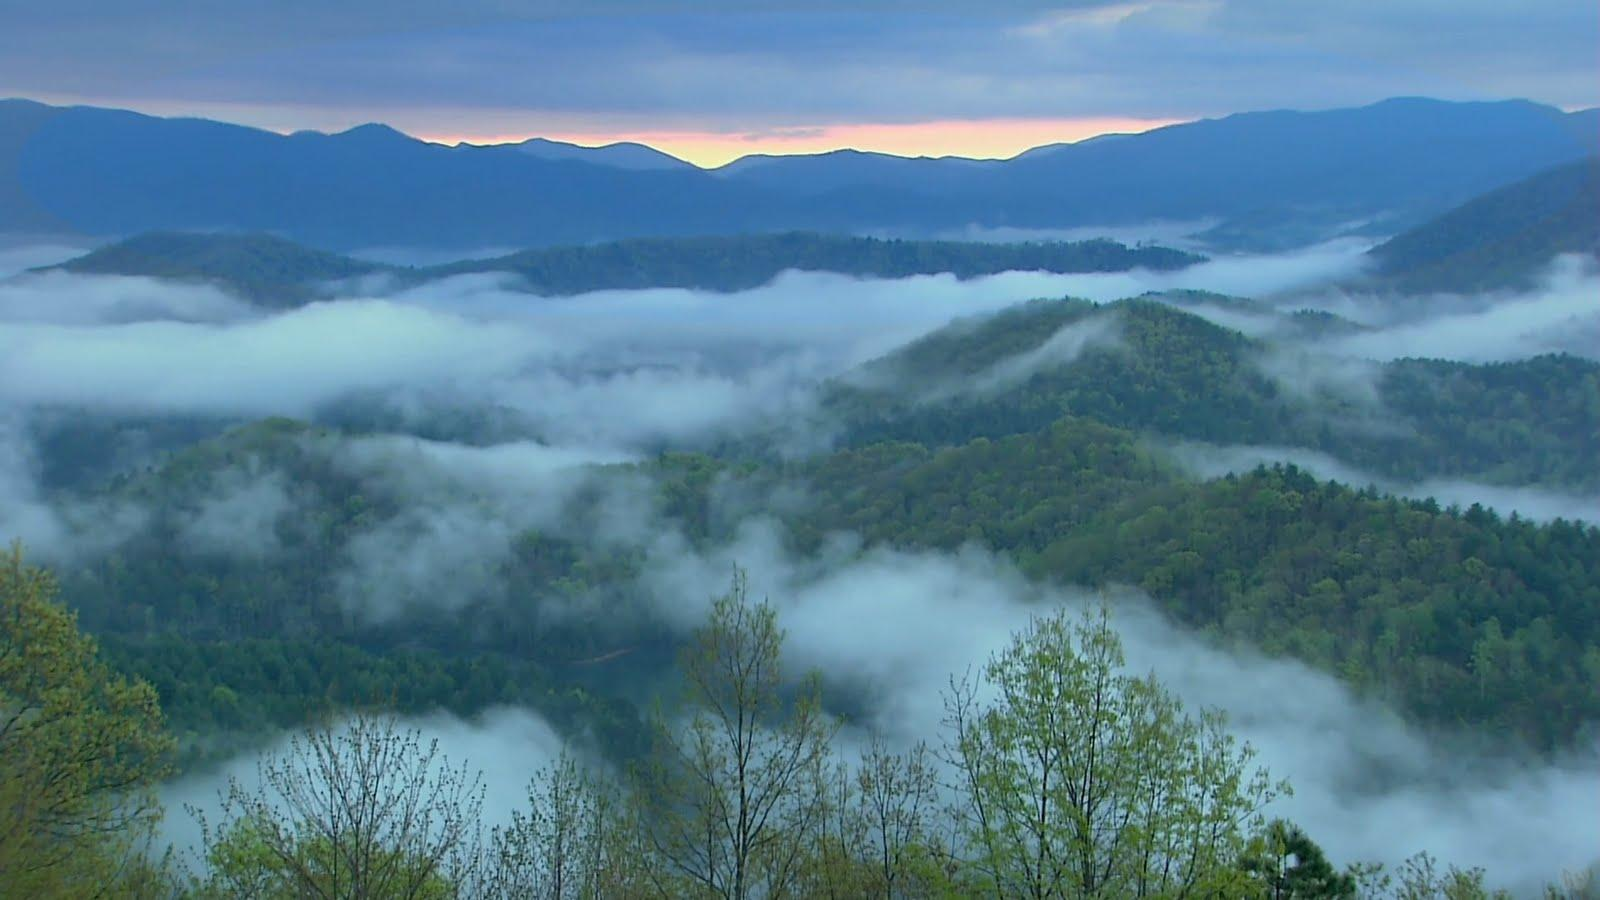 Appalachian Mountains Wallpaper - WallpaperSafari